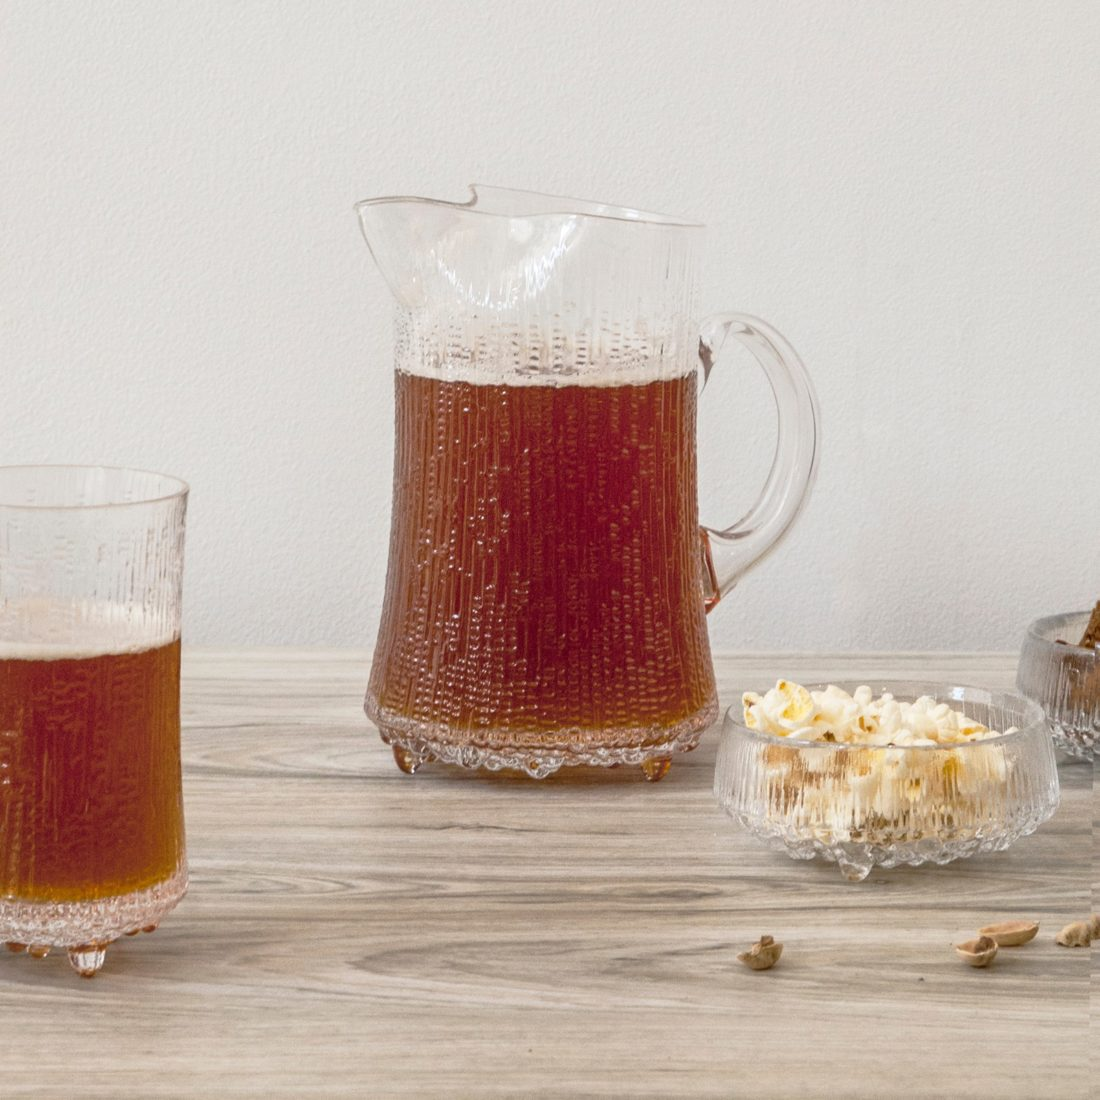 ULTIMA THULE Ice-lip Pitcher